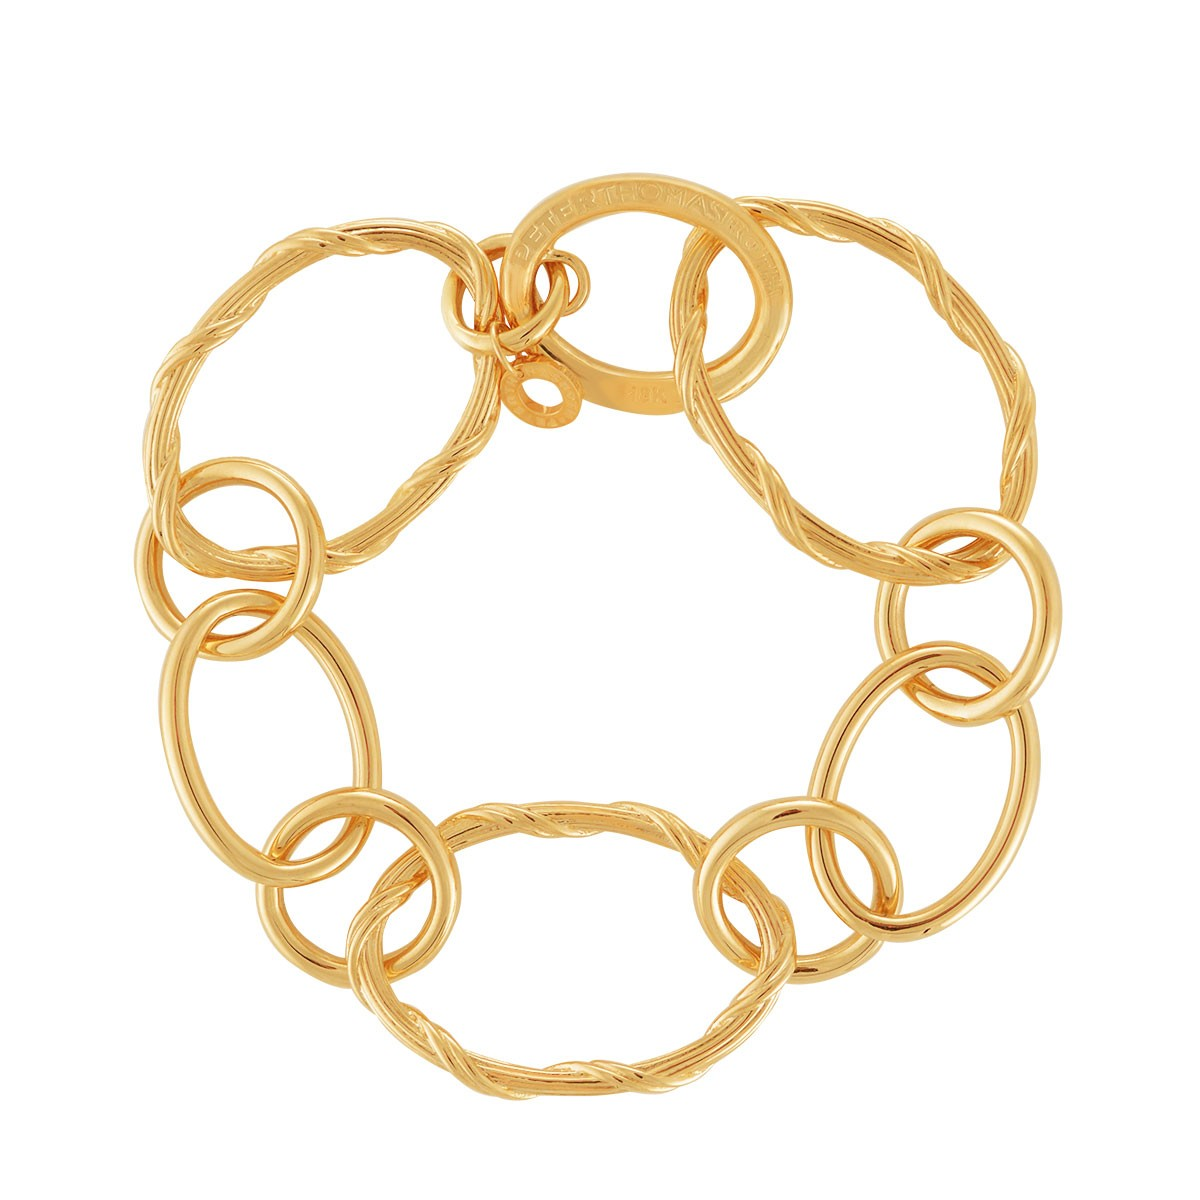 Heritage Mixed Link Oval Bracelet in 18K yellow gold